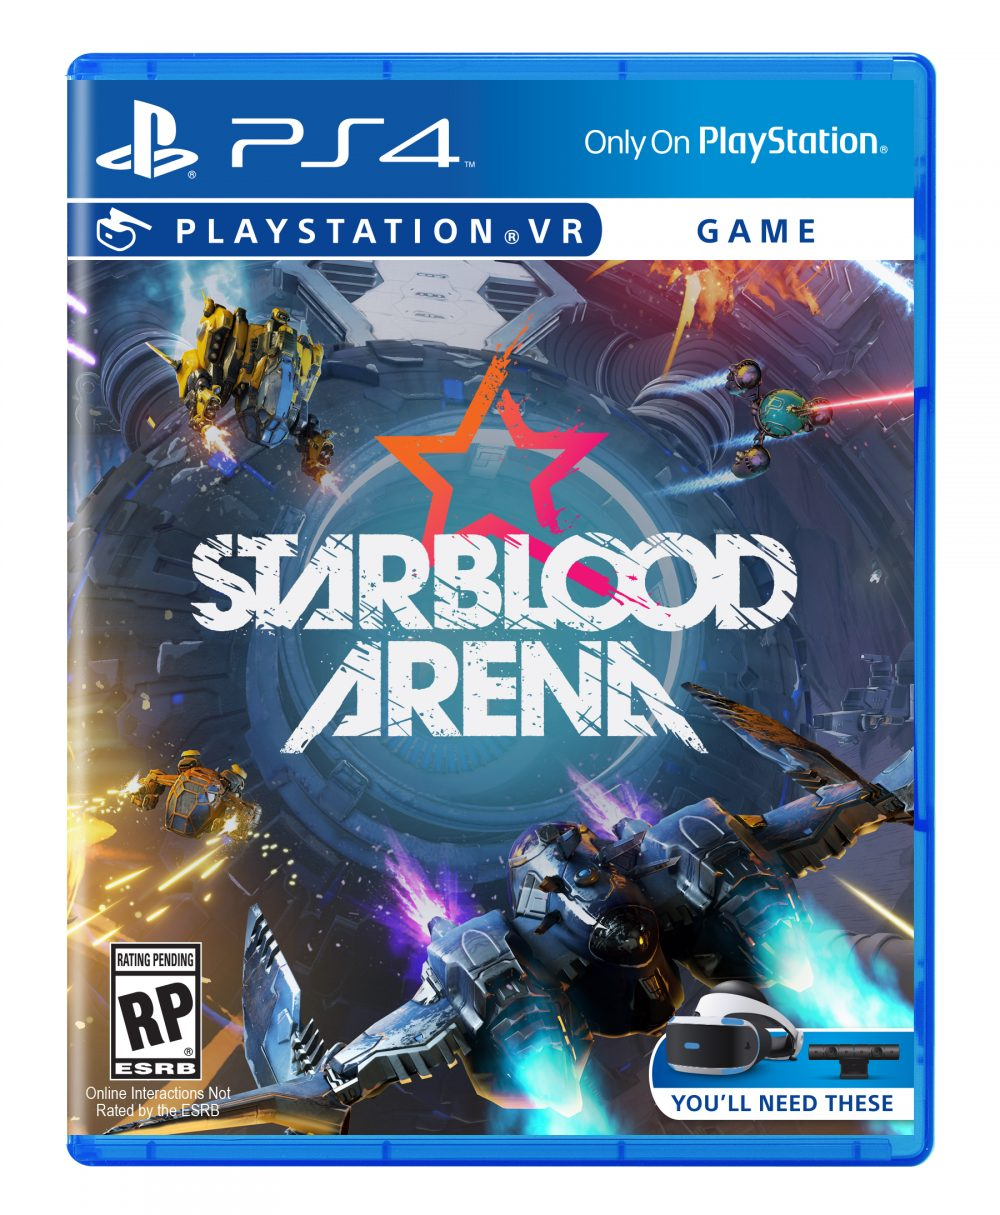 starblood arena annonc en exclu sur playstation vr. Black Bedroom Furniture Sets. Home Design Ideas